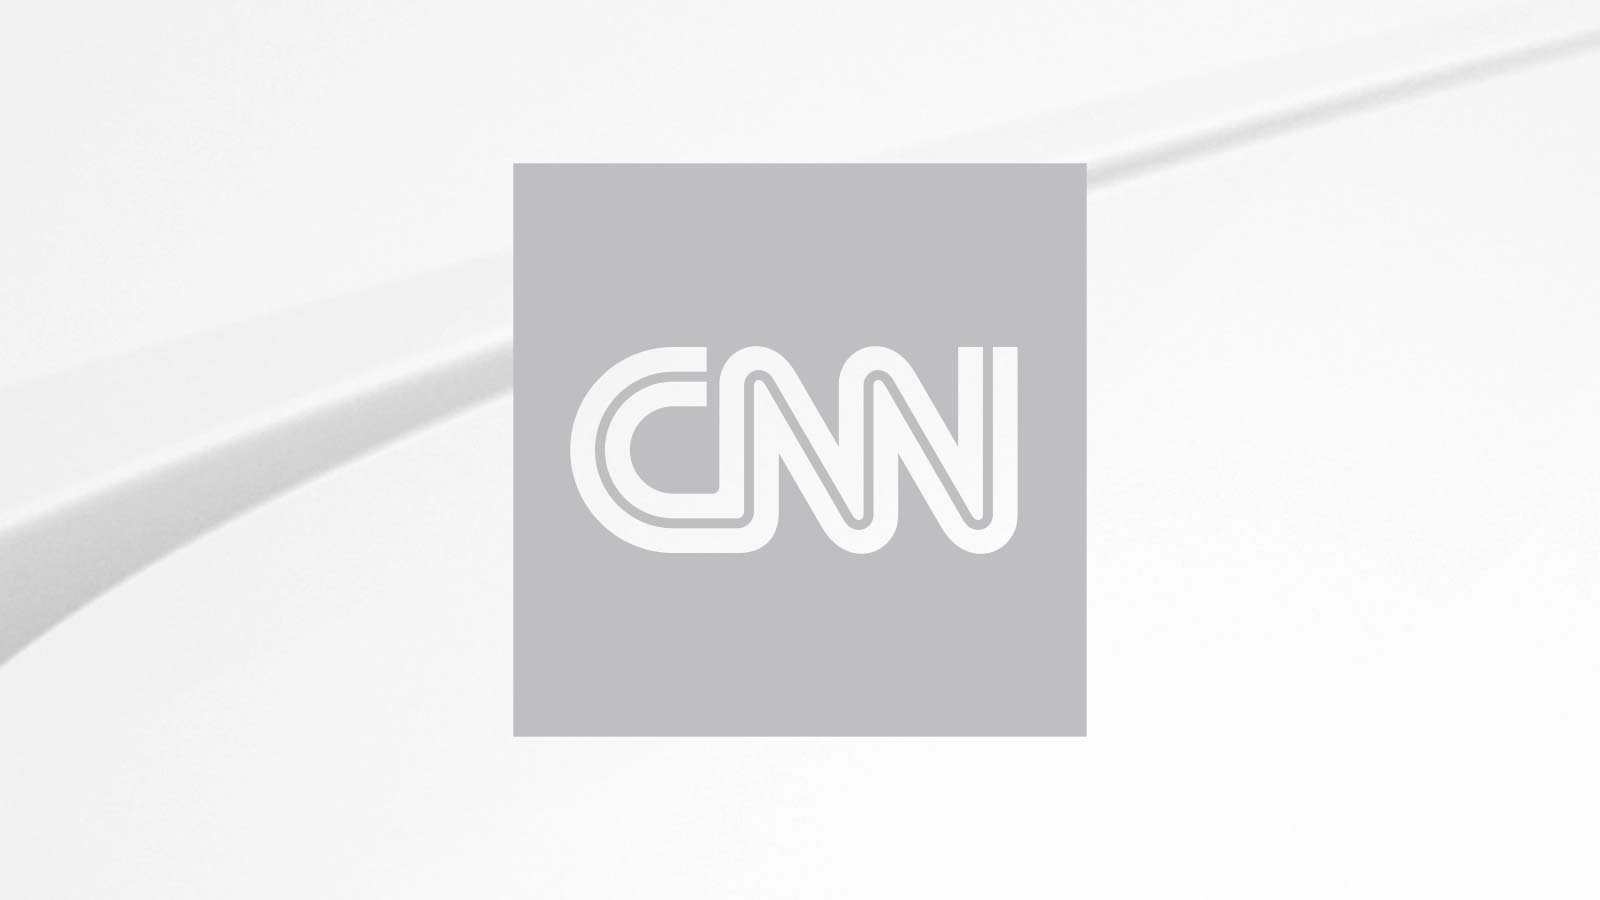 Space + Science News - CNN